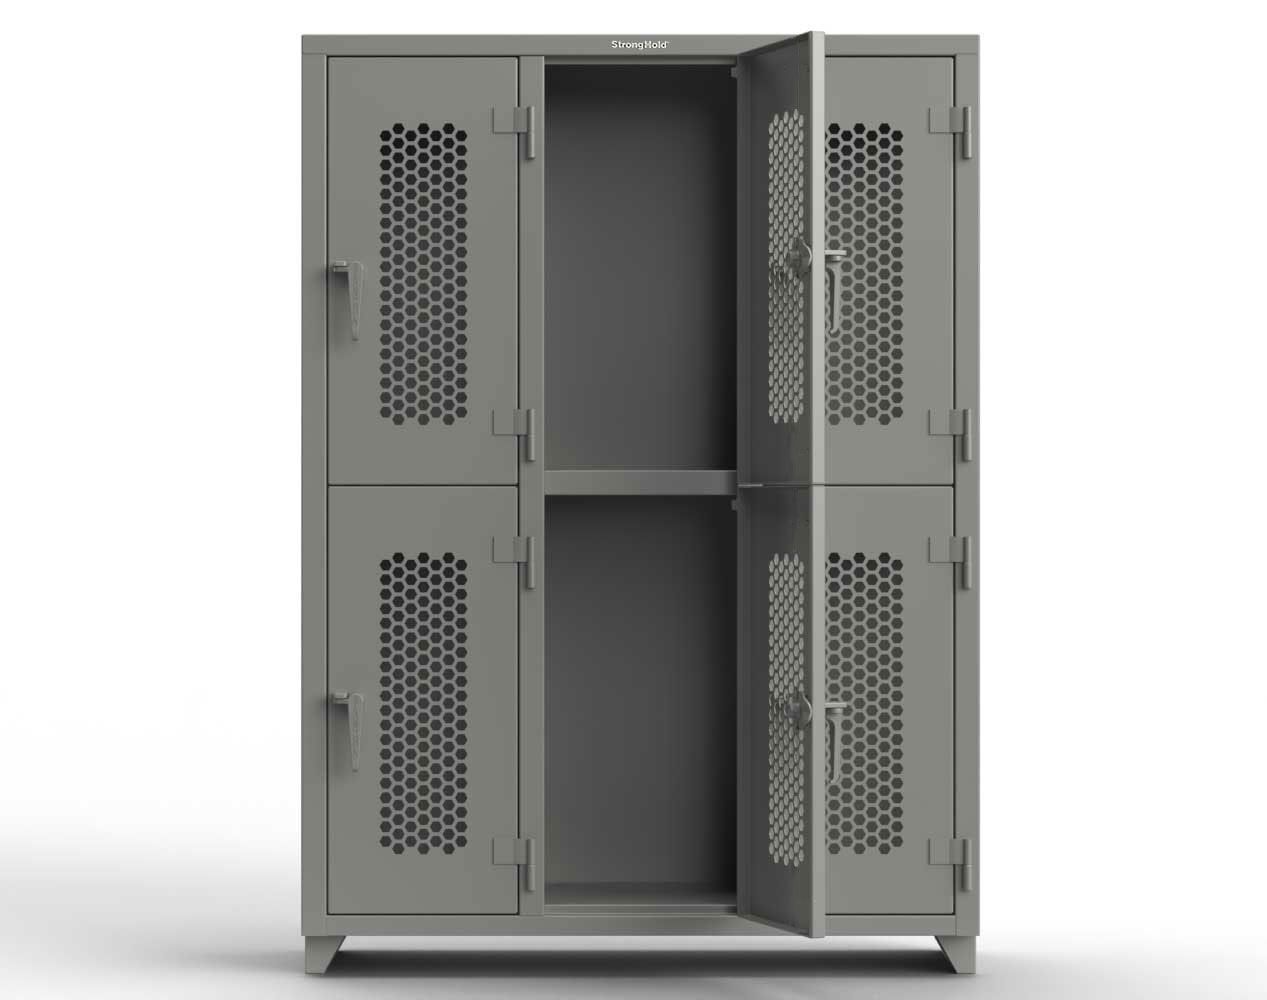 Extra Heavy Duty 14 GA Double-Tier Ventilated Locker, 6 Compartments – 54 in. W x 18 in. D x 75 in. H